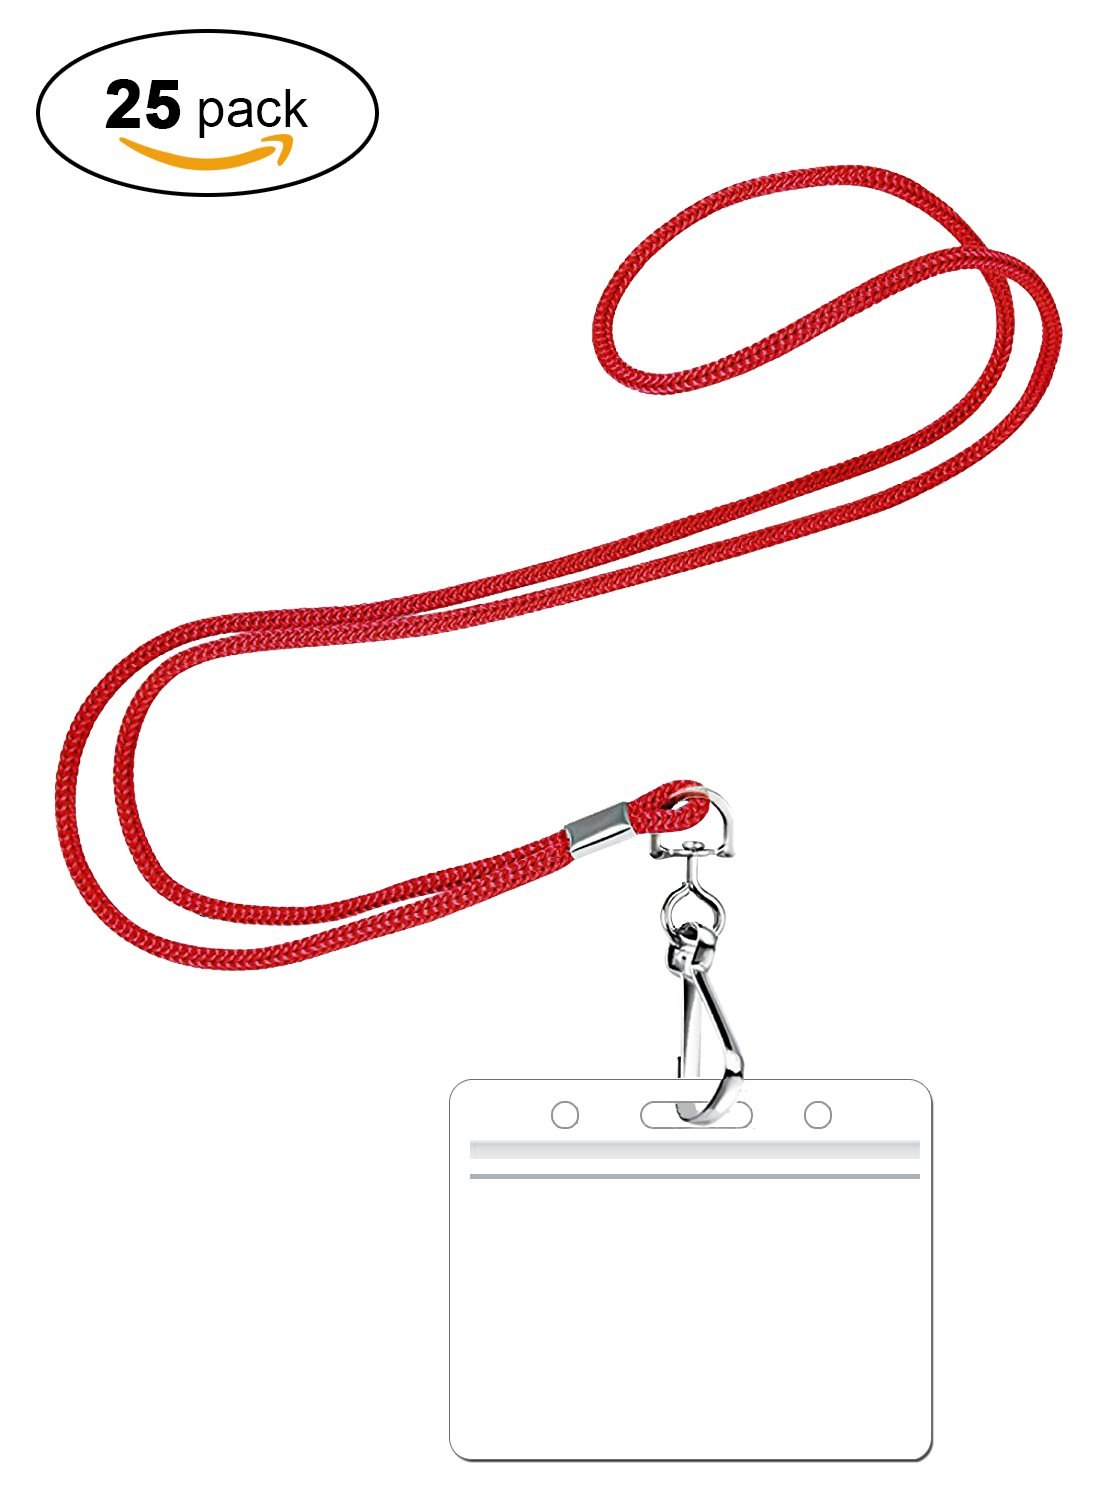 PROMOKING Woven Lanyard with Horizontal ID Badge Holder and Swivel Hook Available In 3 Colors | Red, Royal Blue, Black (25pk, Red)